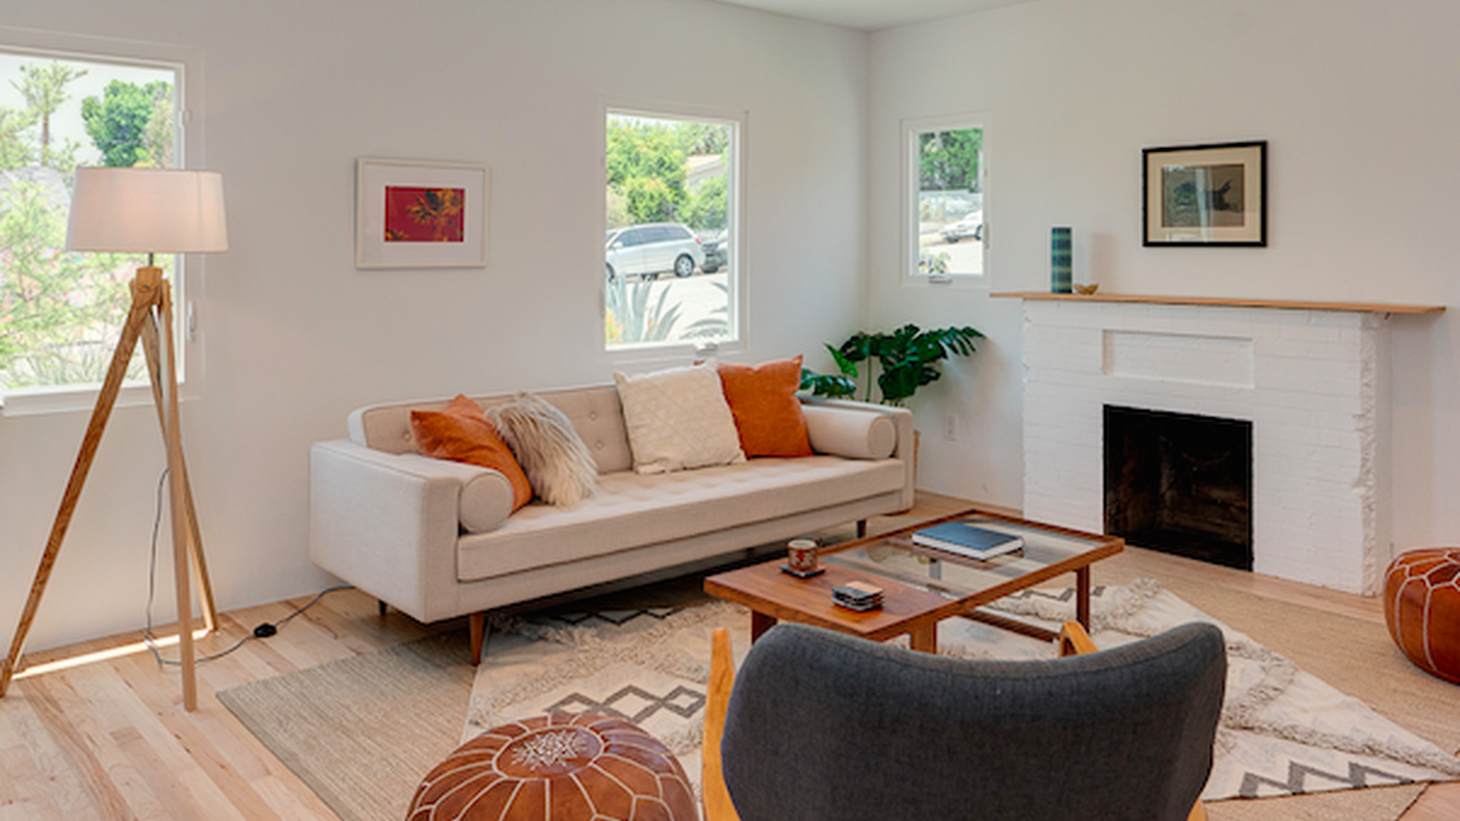 The median home price in LA surpassed $600,000 for the first time this year. Prices are fueled by big market forces, but today we're looking at one little factor juicing the stats: home staging.